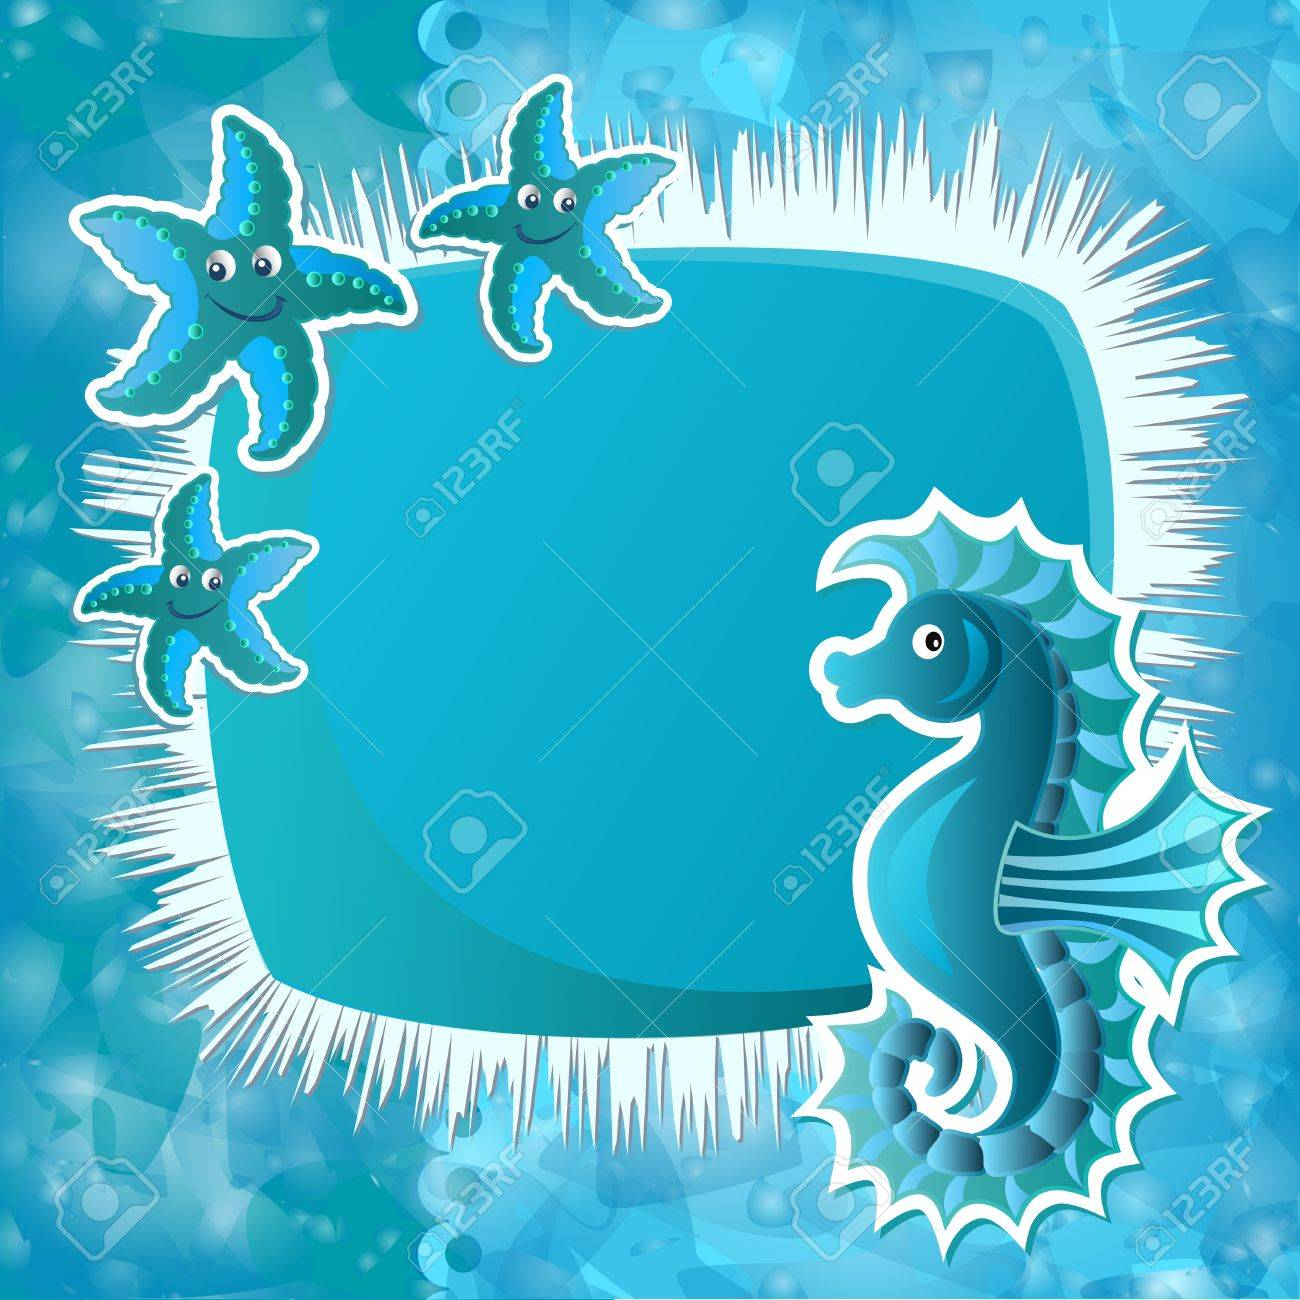 Baby background with funny sea animals Stock Vector - 14193133